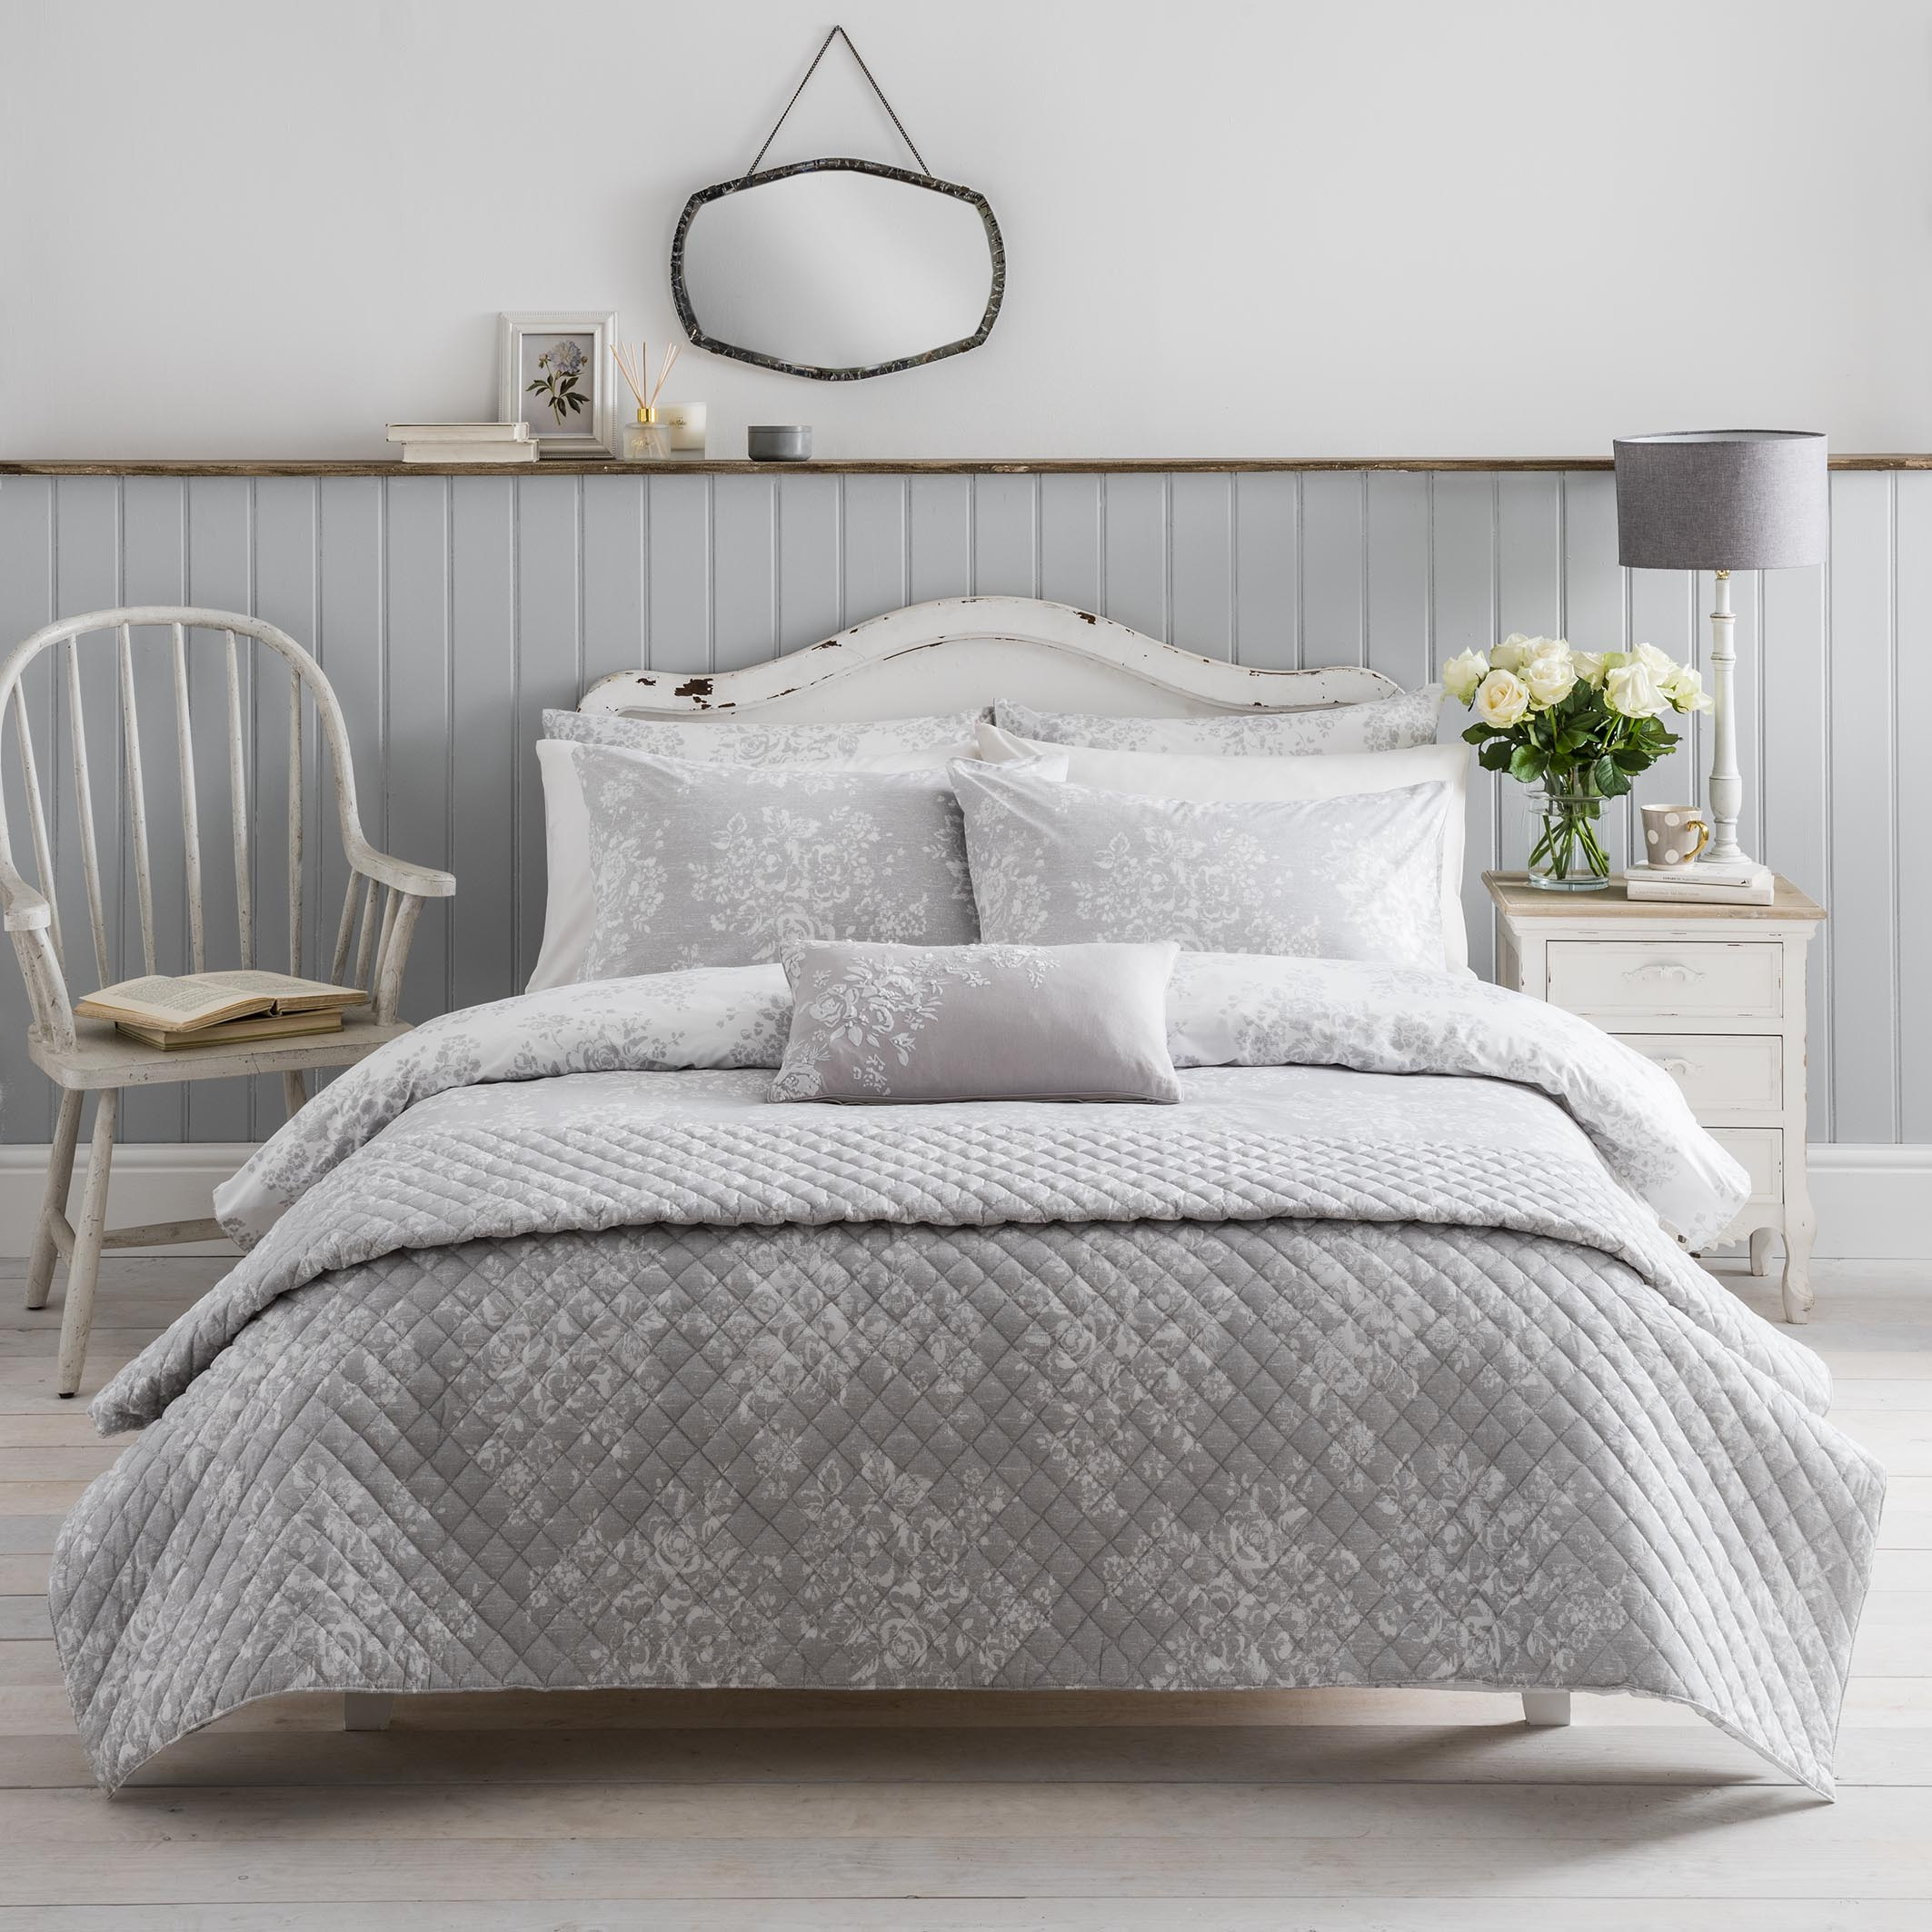 Washed rose duvet cover set by Cath Kidston